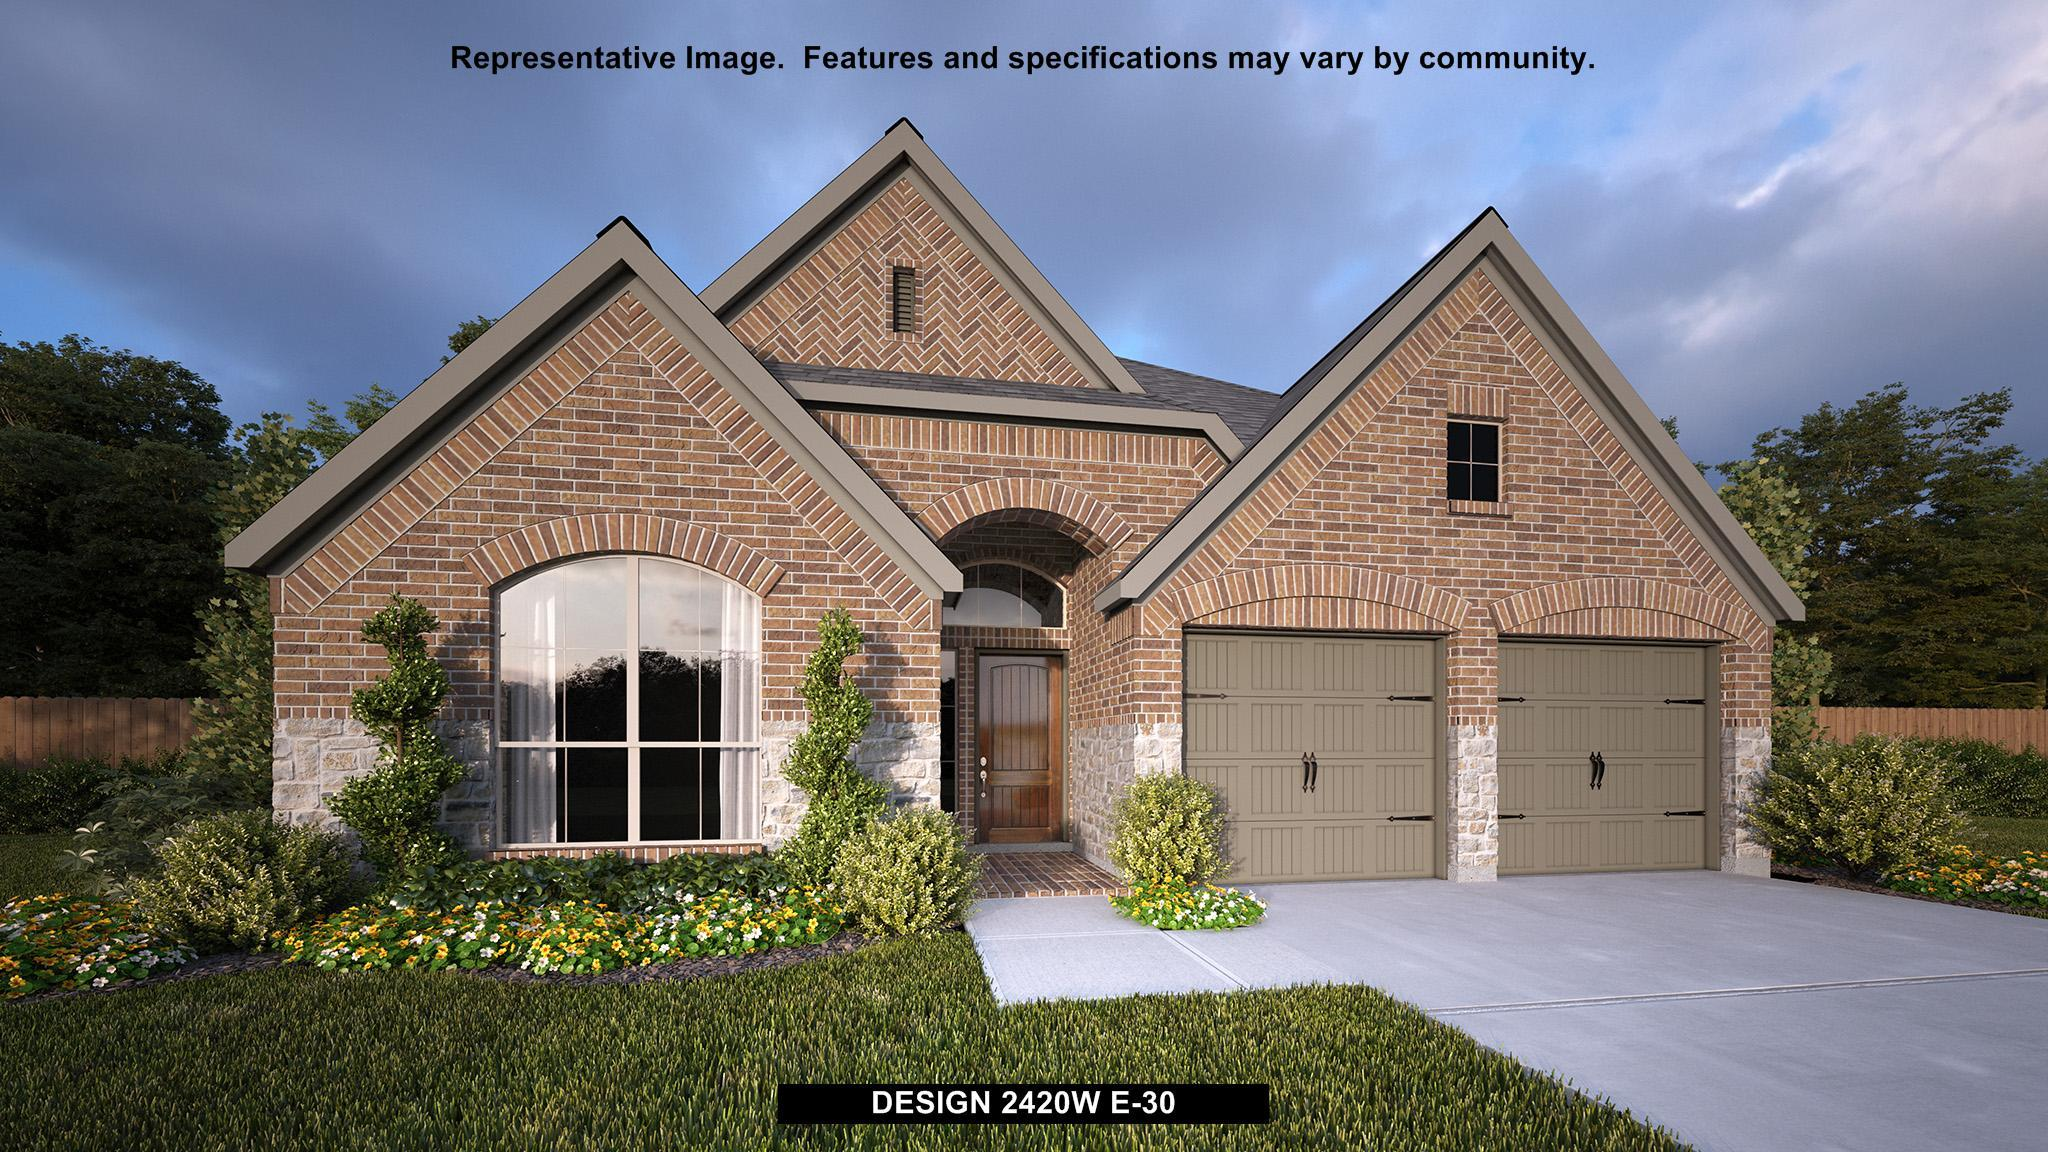 Single Family for Sale at Blanco Vista 45' - 2420w 120 Lacey Oak Loop San Marcos, Texas 78666 United States